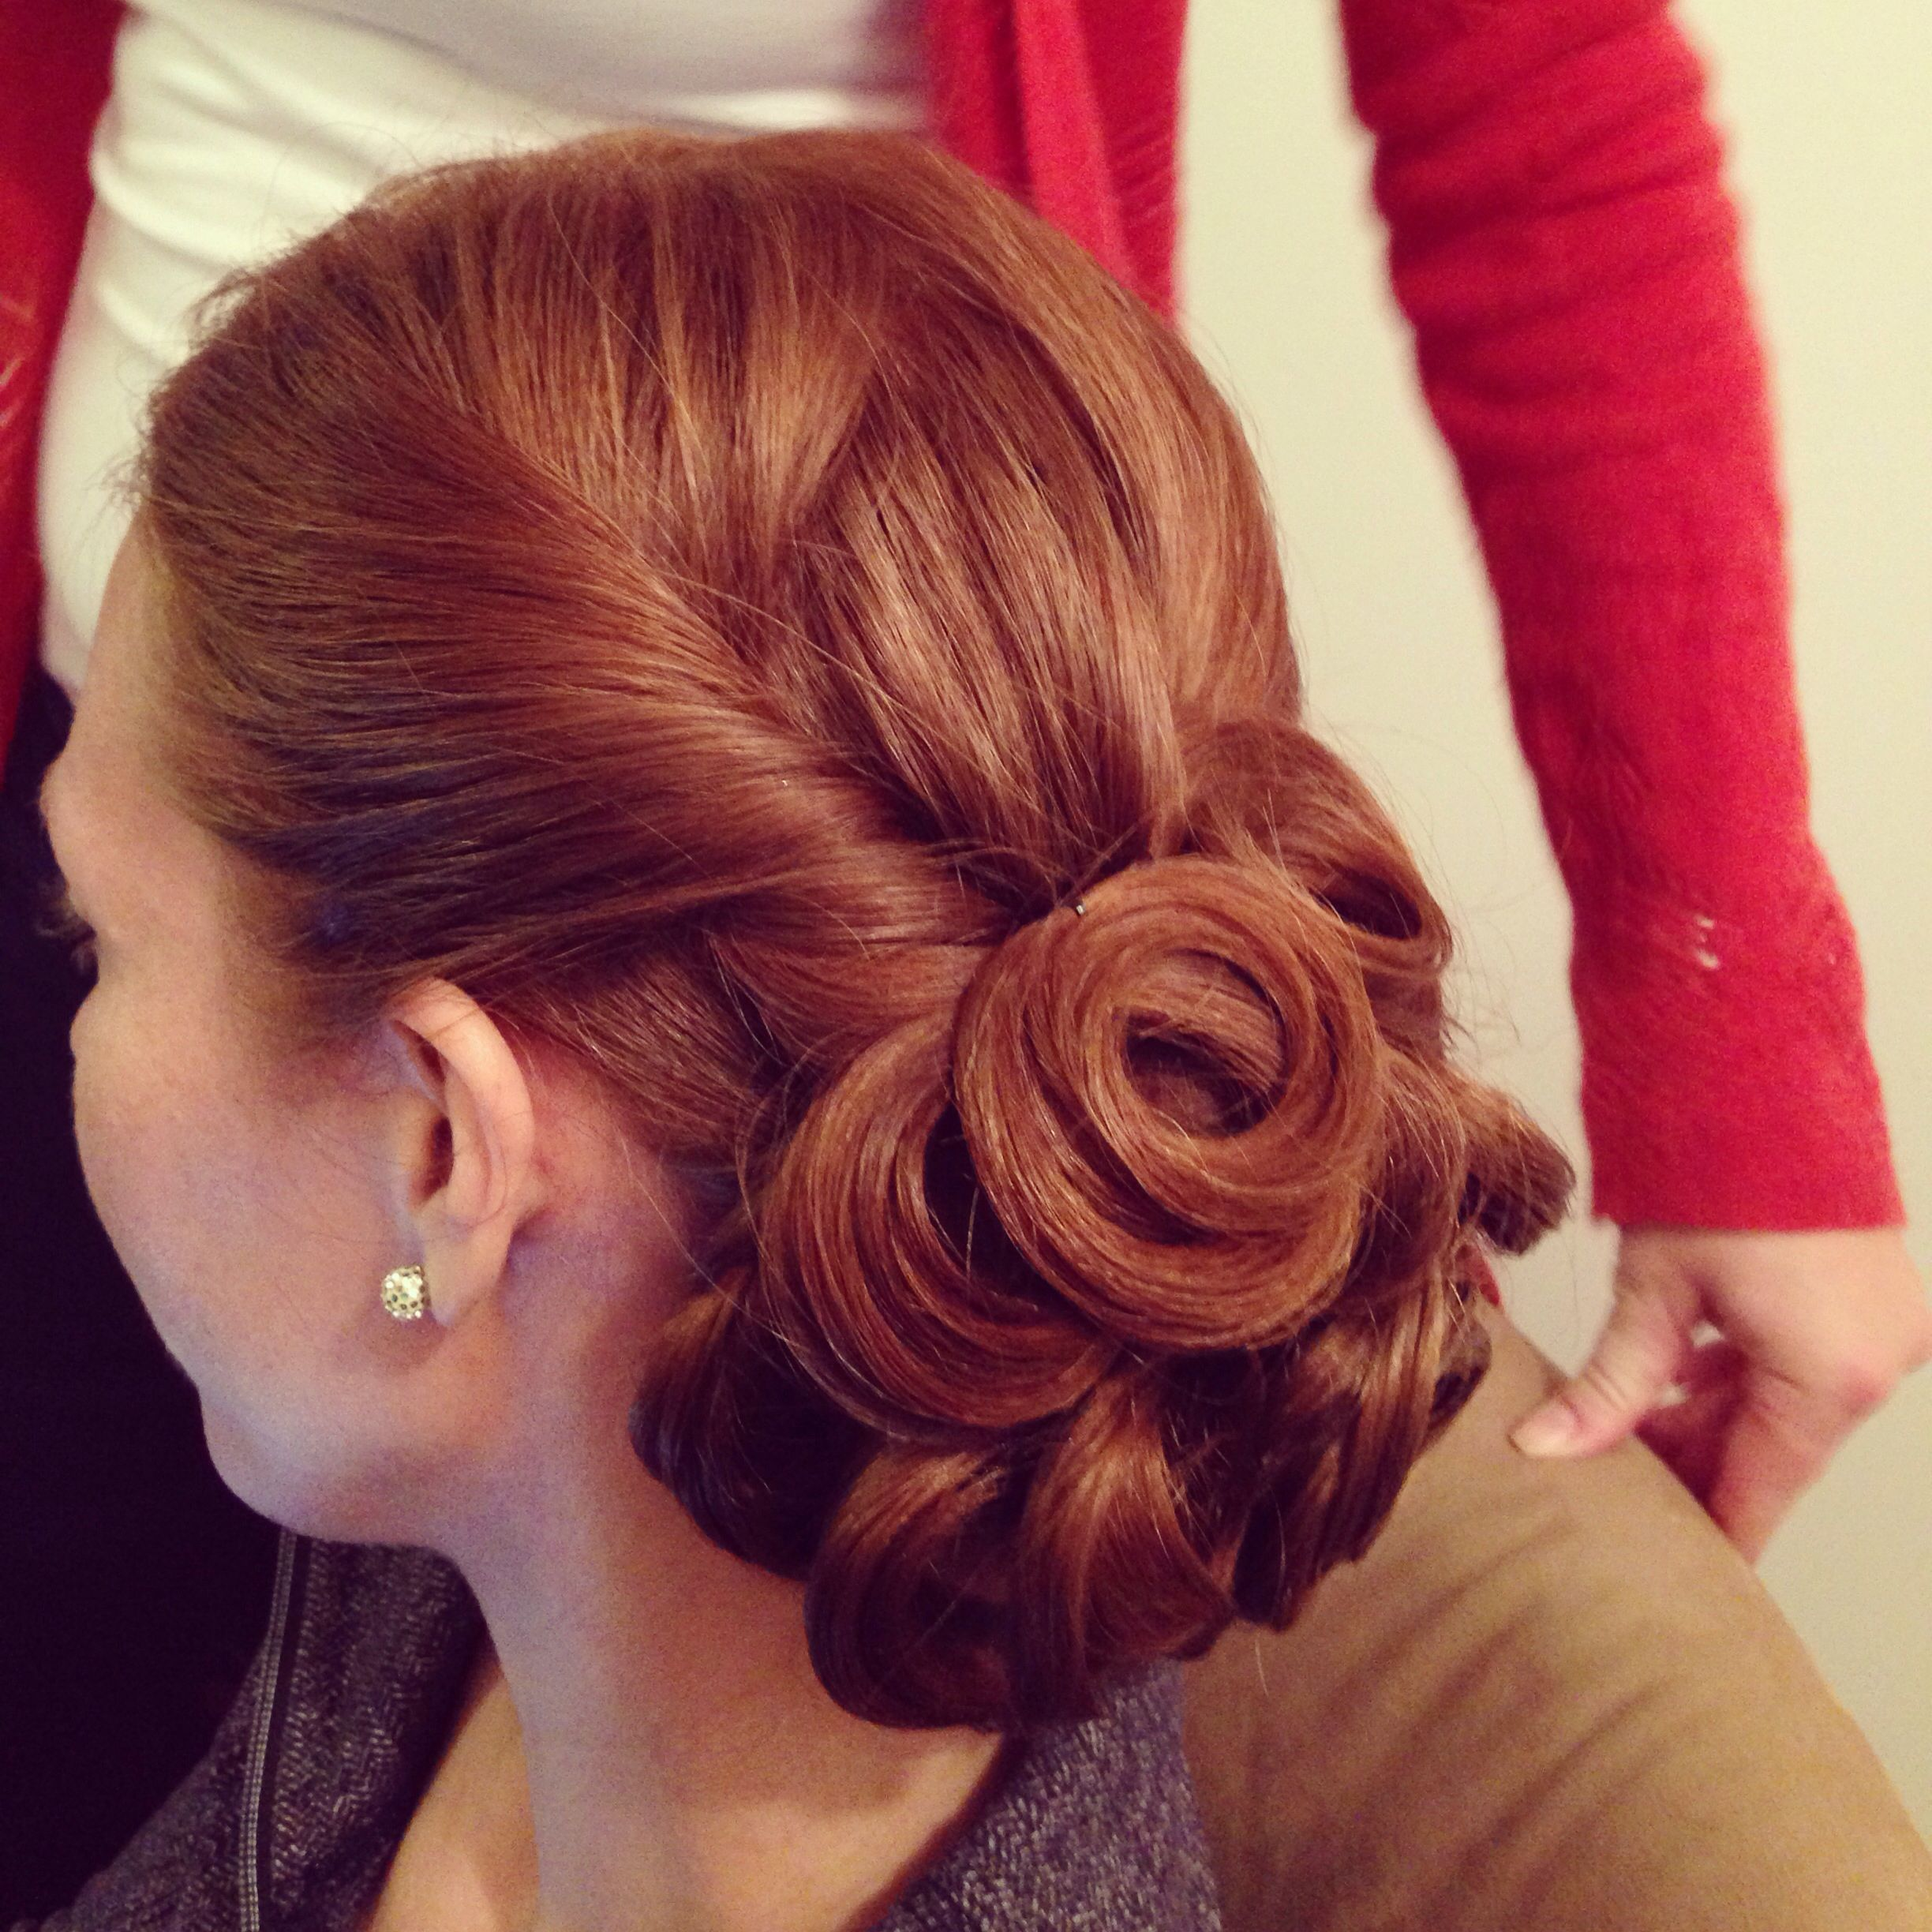 Bridal Hair Updo, Bridesmaid Hair Updo